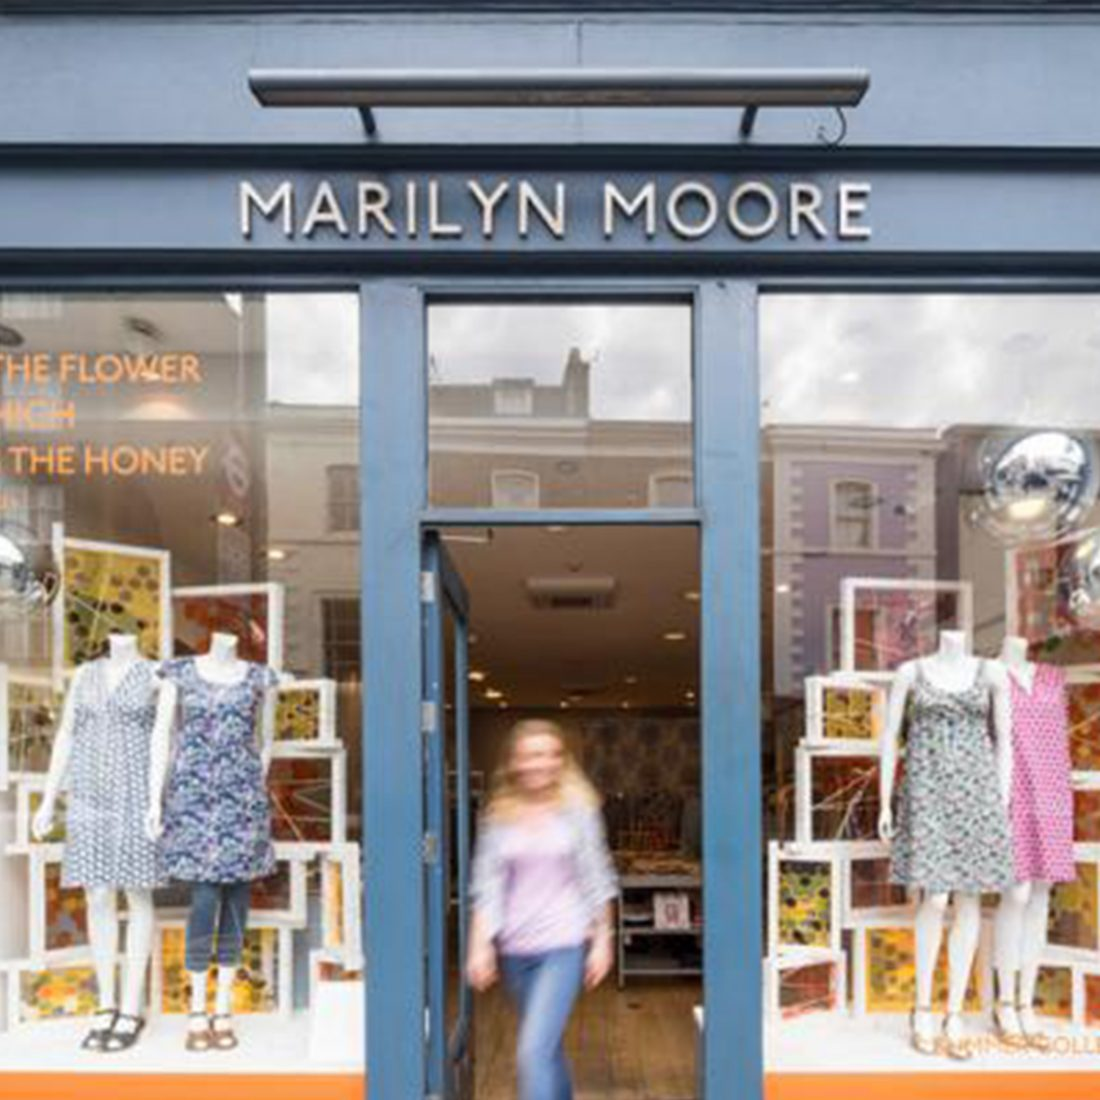 Marilyn Moore creates a Buzz in Chelsea